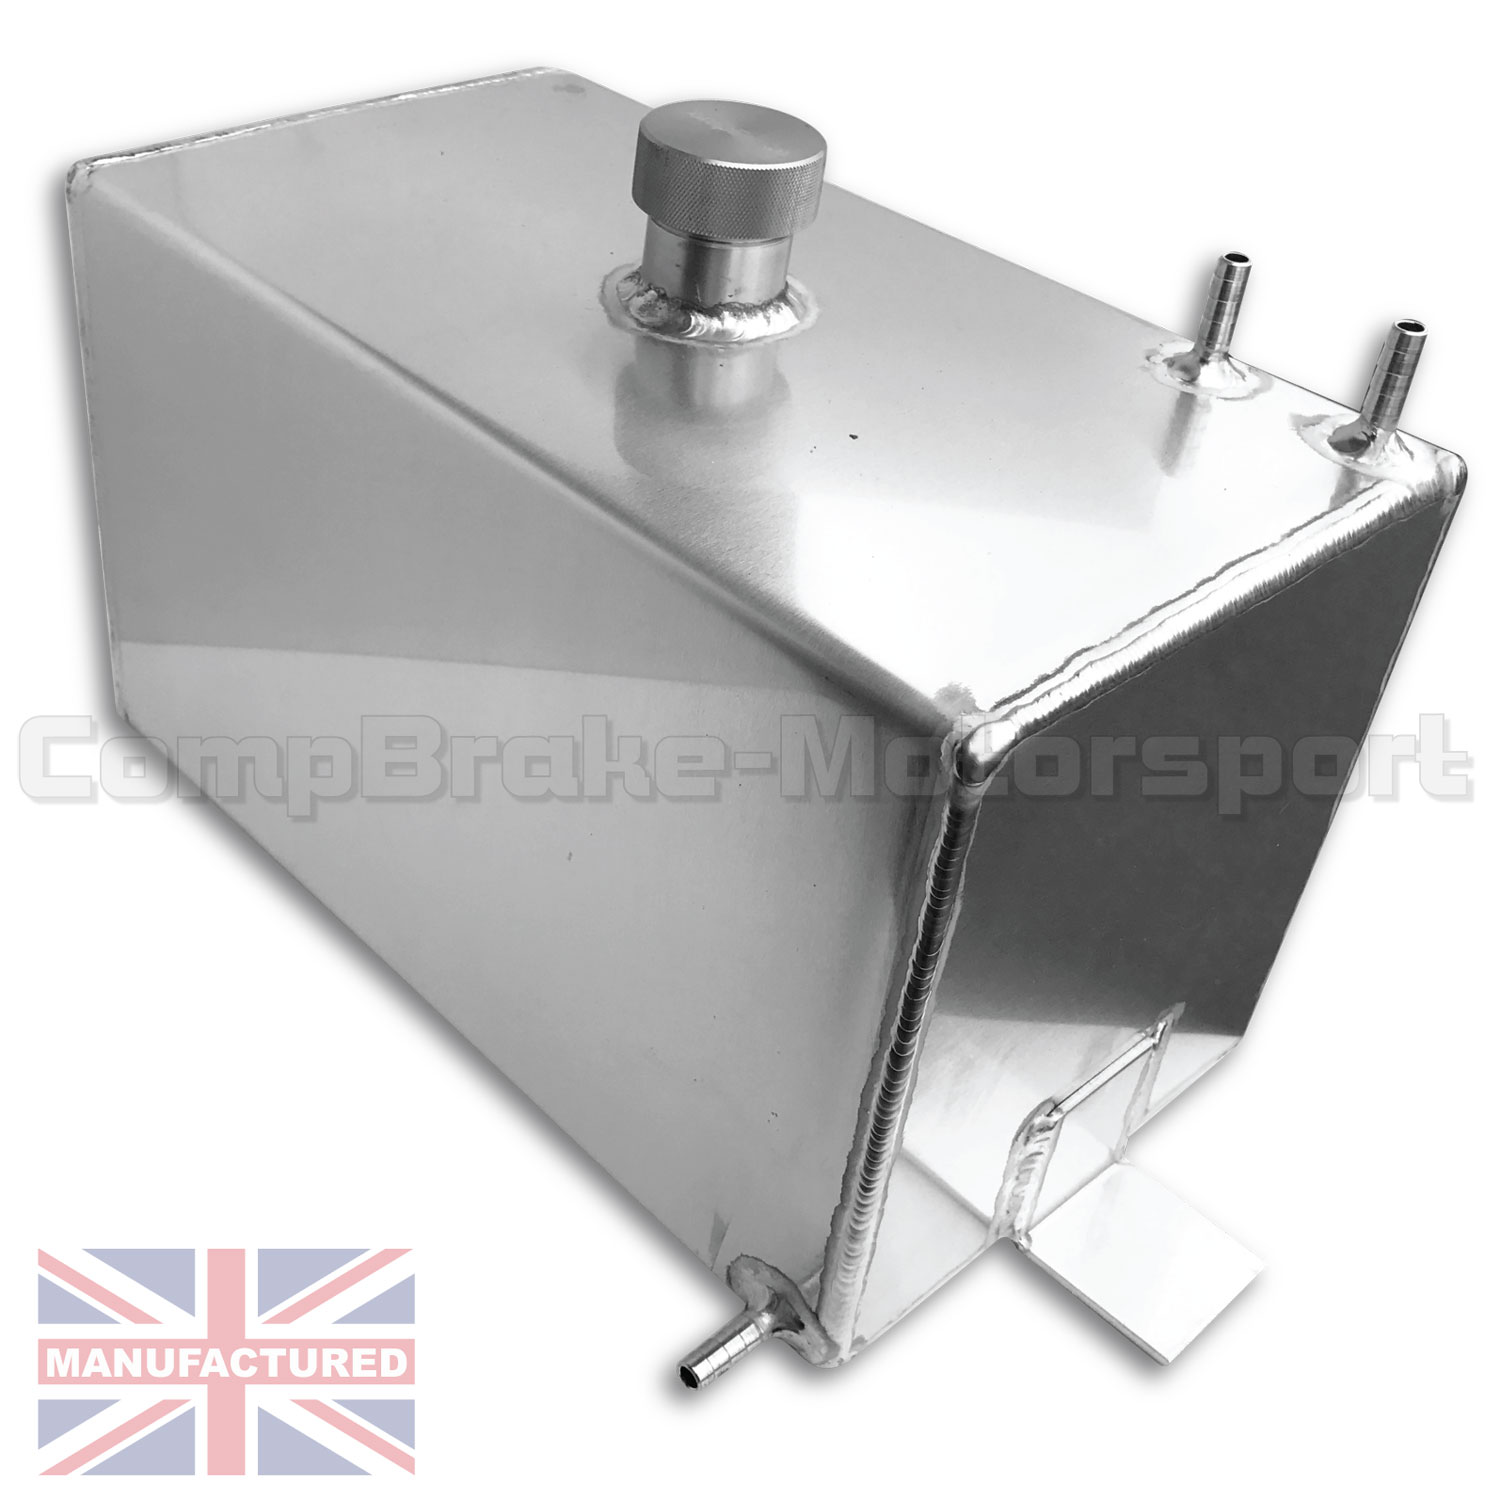 2 Gallon 11 7 Ltr Baffled Aluminium Fuel Tank Single